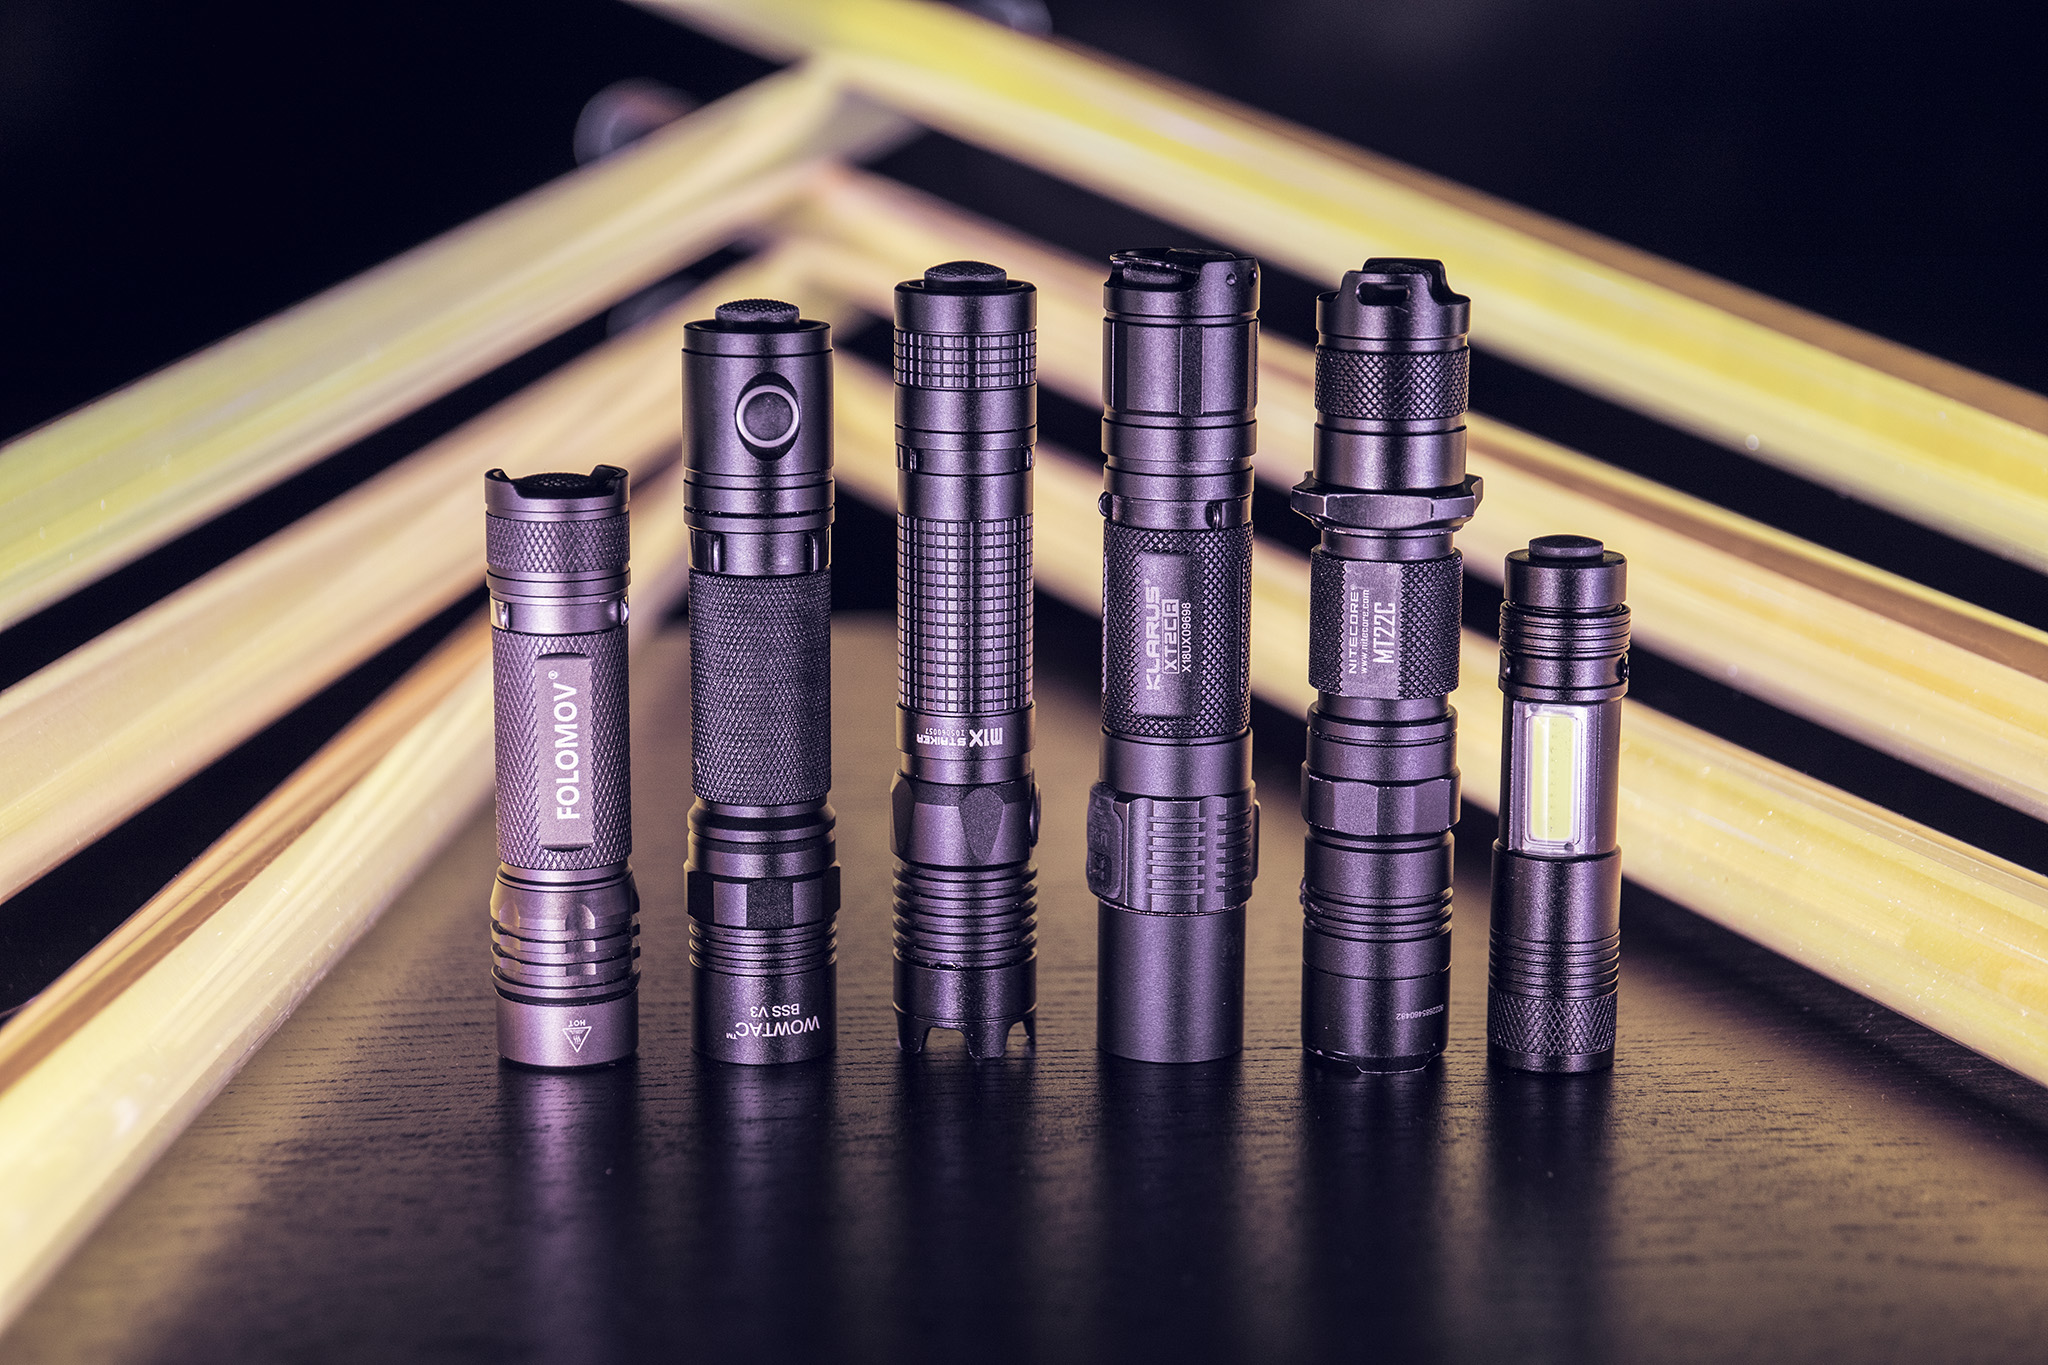 From left to right: Folomov 18650s, Wowtac BSS v3, Olight M1x striker, Klarus XT2CR, Nitecore MT22c, Outline flashlight